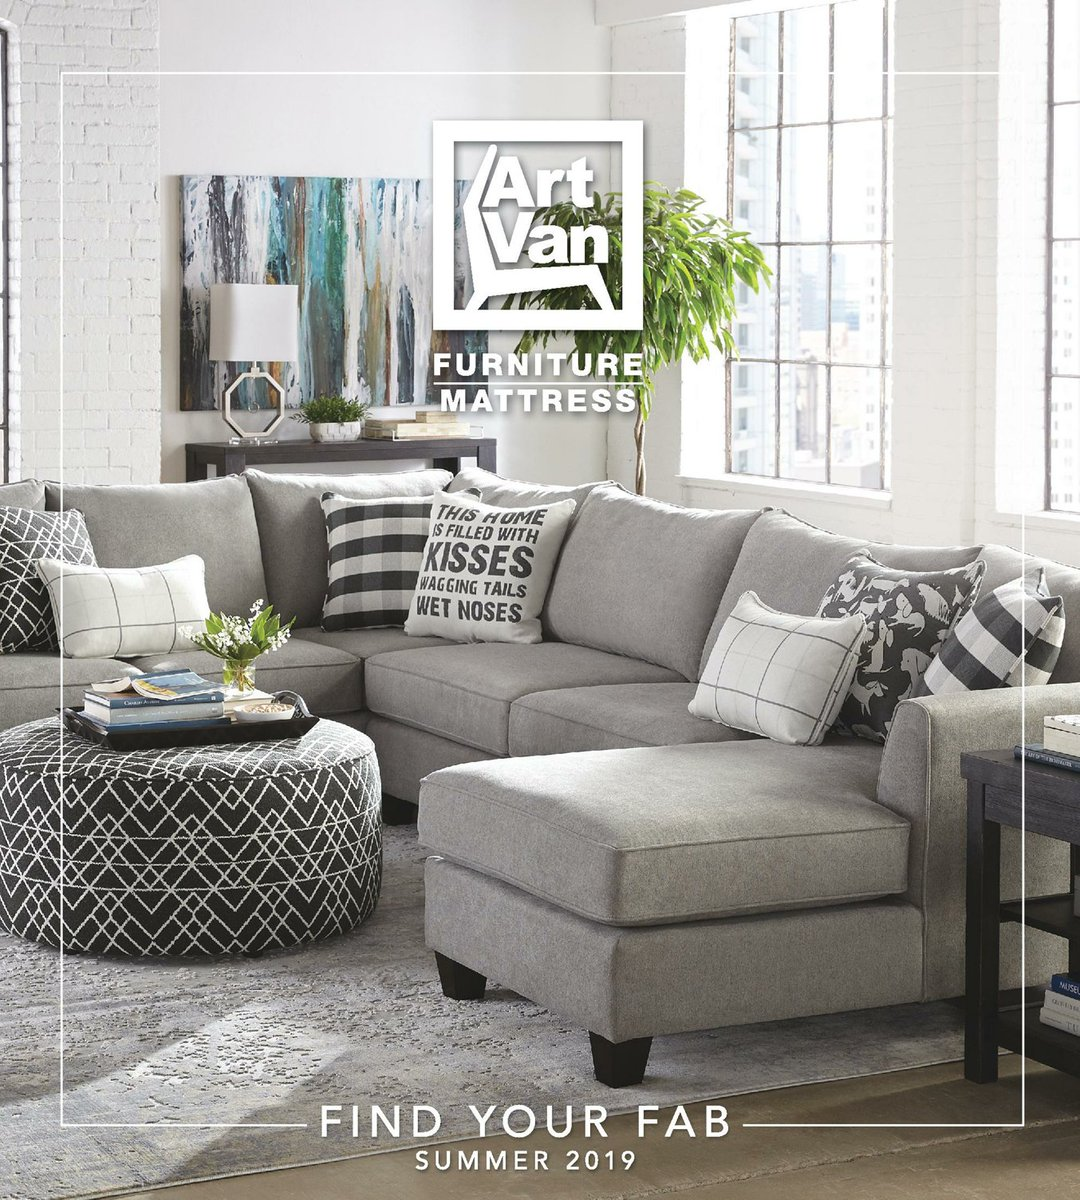 Art Van Furniture Artvan Twitter